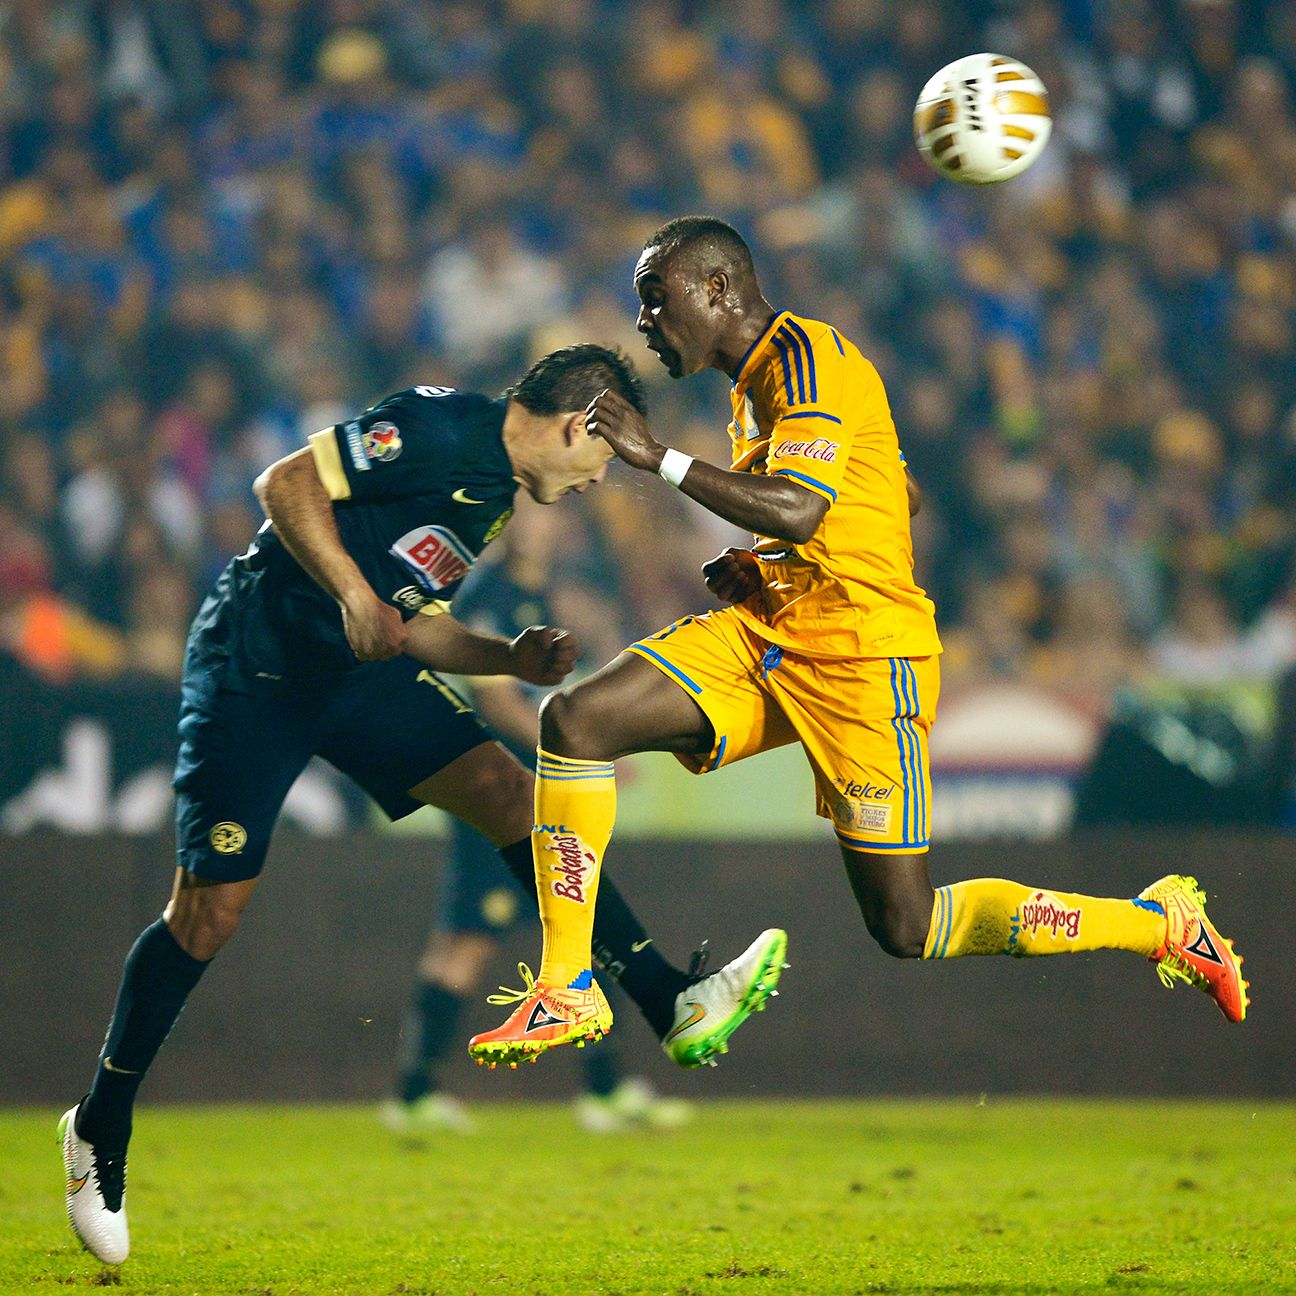 Sunday's second leg in the Liga MX final between Tigres and America is sure to be just as hard-fought as Thursday's first leg.